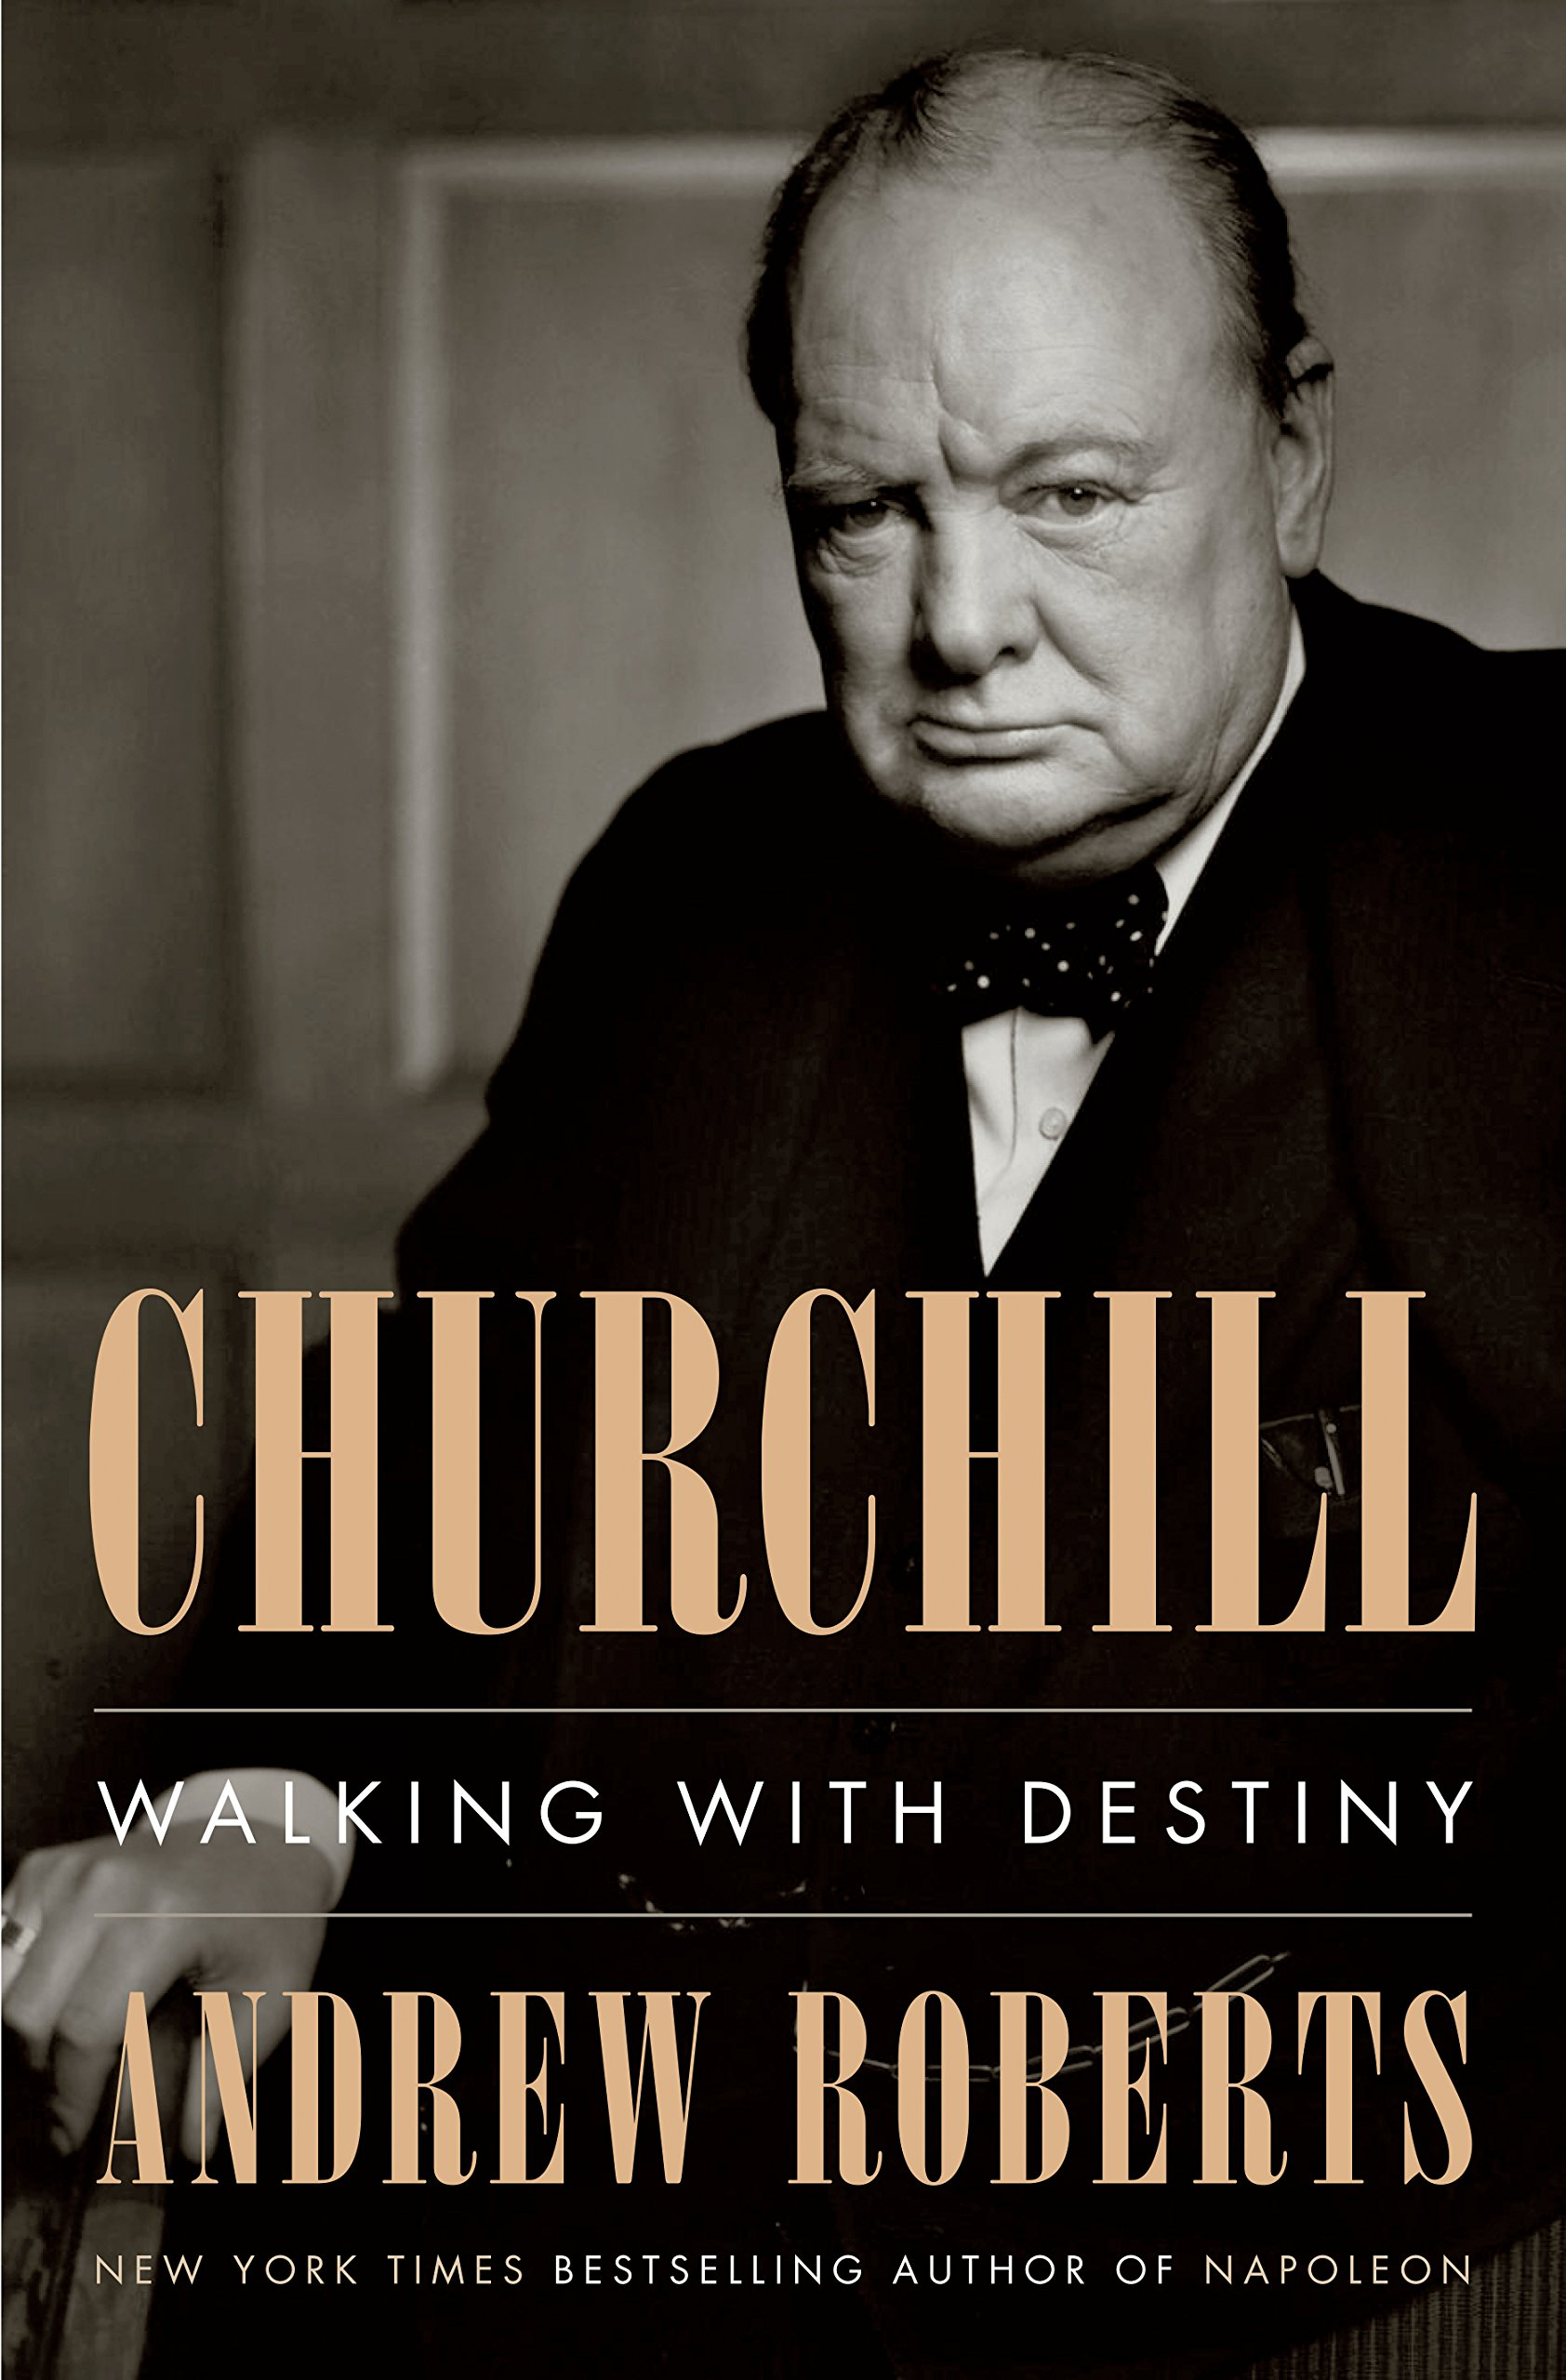 Churchill walking with destiny book cover by Andrew Roberts.